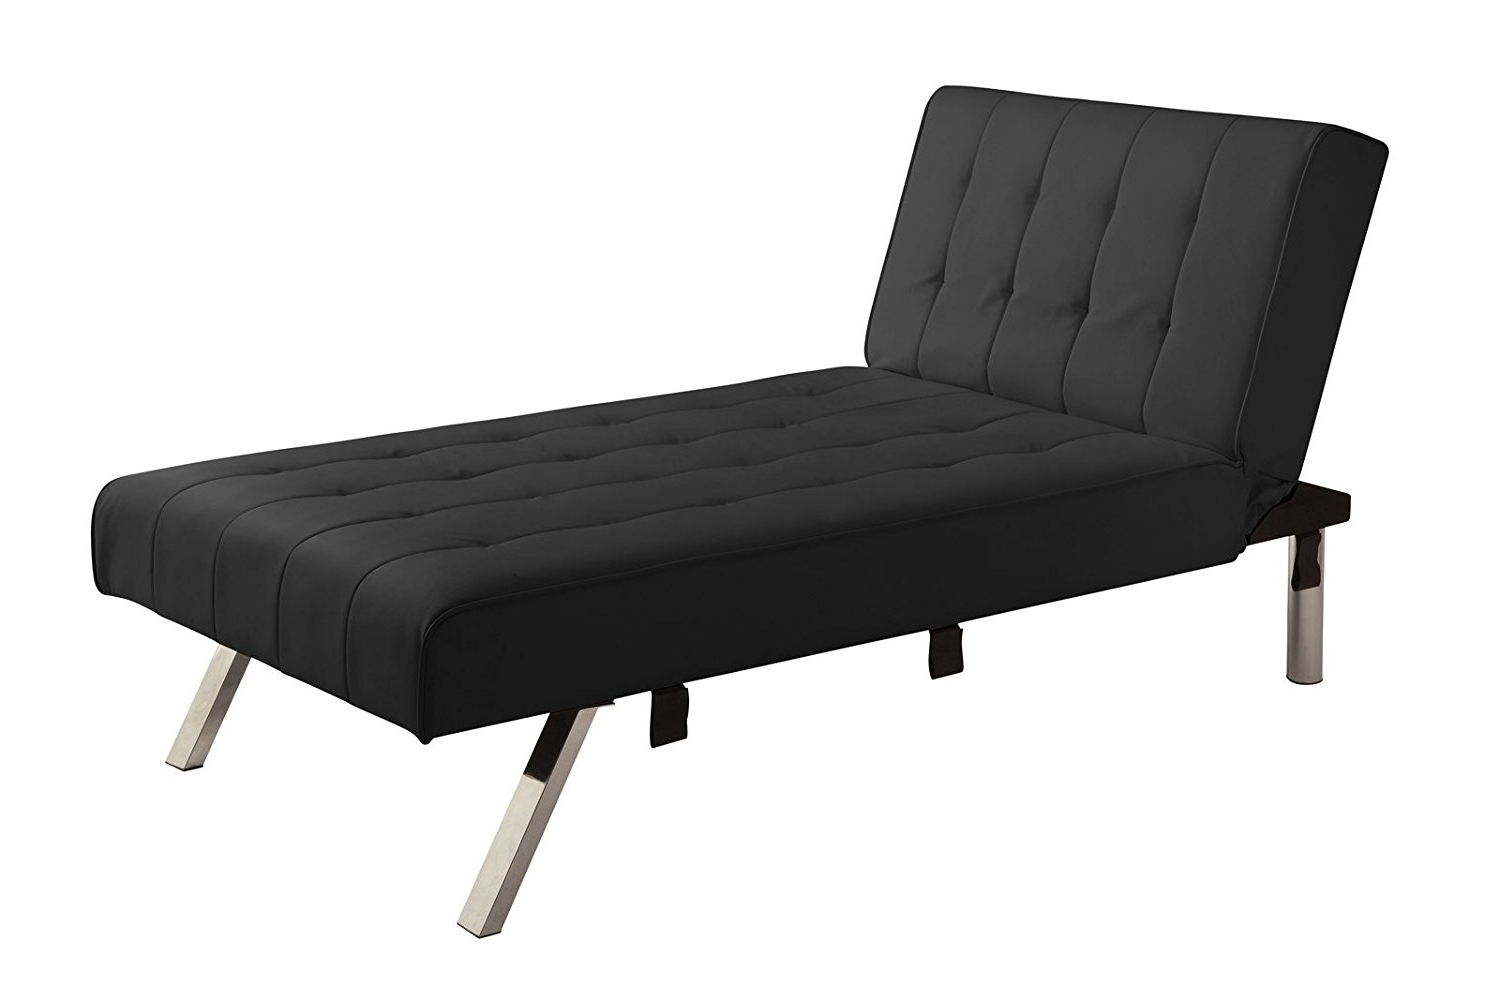 Emily Chaise Lounges Regarding Well Known Amazon: Dhp Emily Linen Chaise Lounger, Stylish Design With (View 7 of 15)